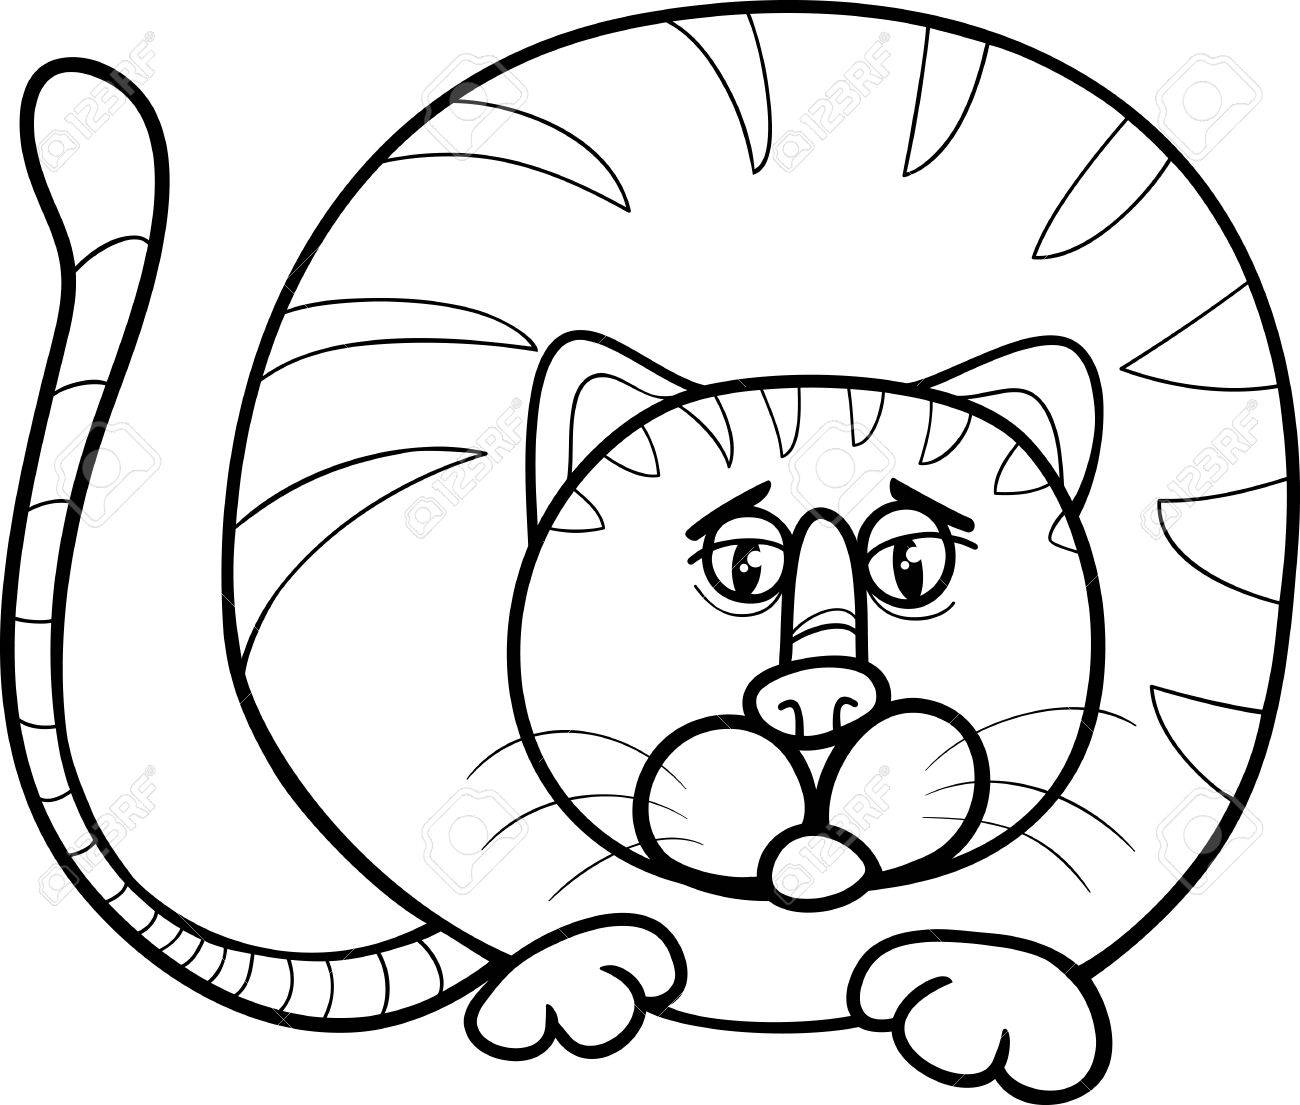 black and white cartoon illustration of funny fat cat character rh 123rf com